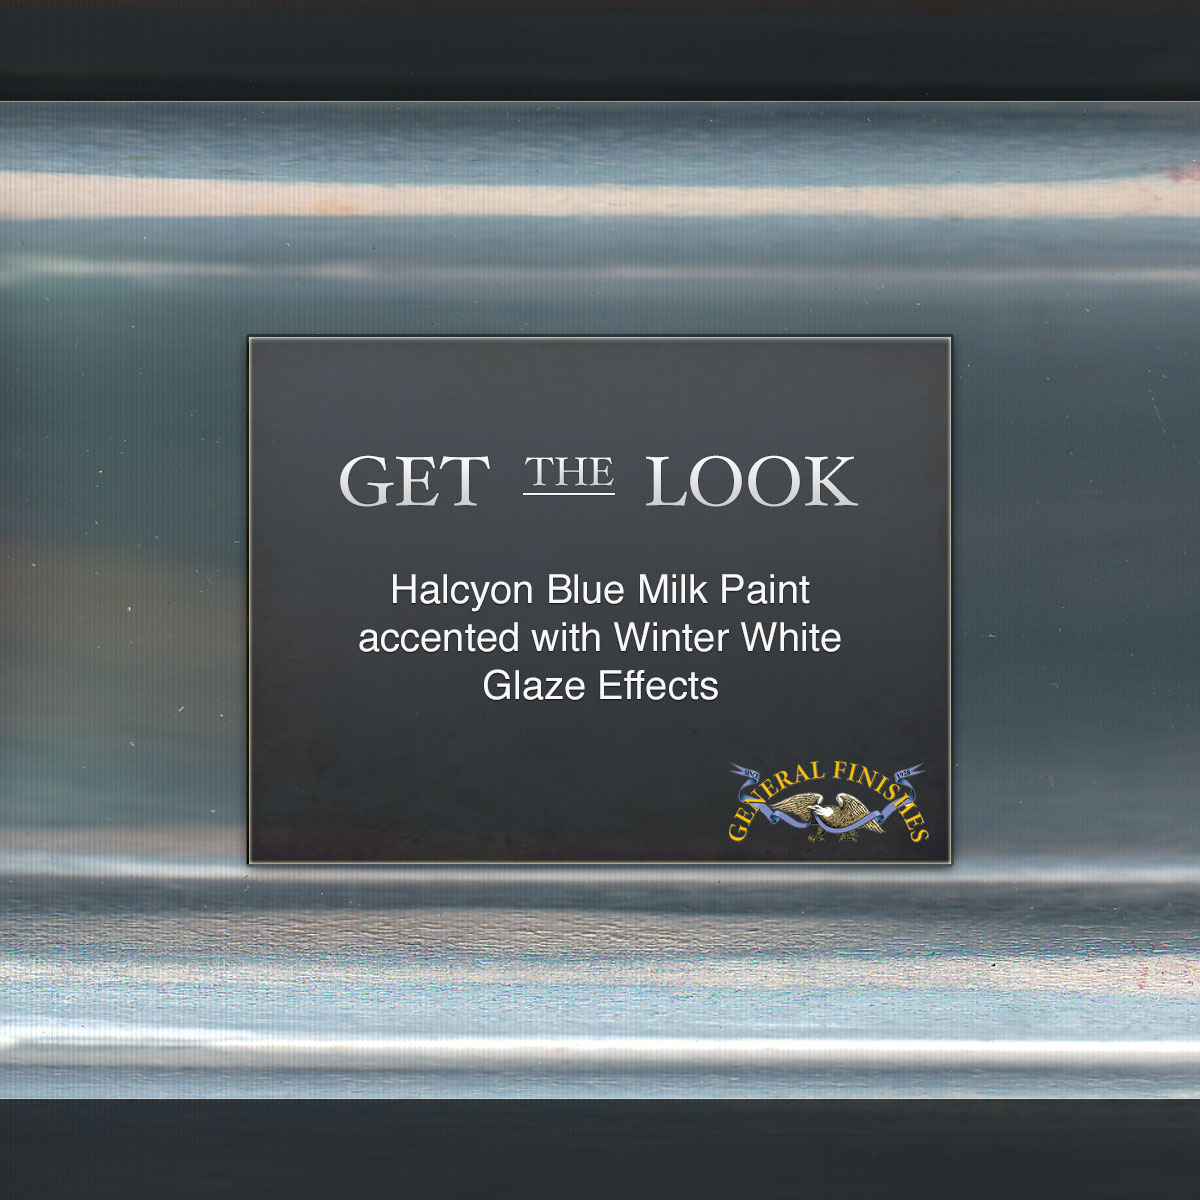 Get The Look Halcyon Blue Milk Paint Accented With Winter